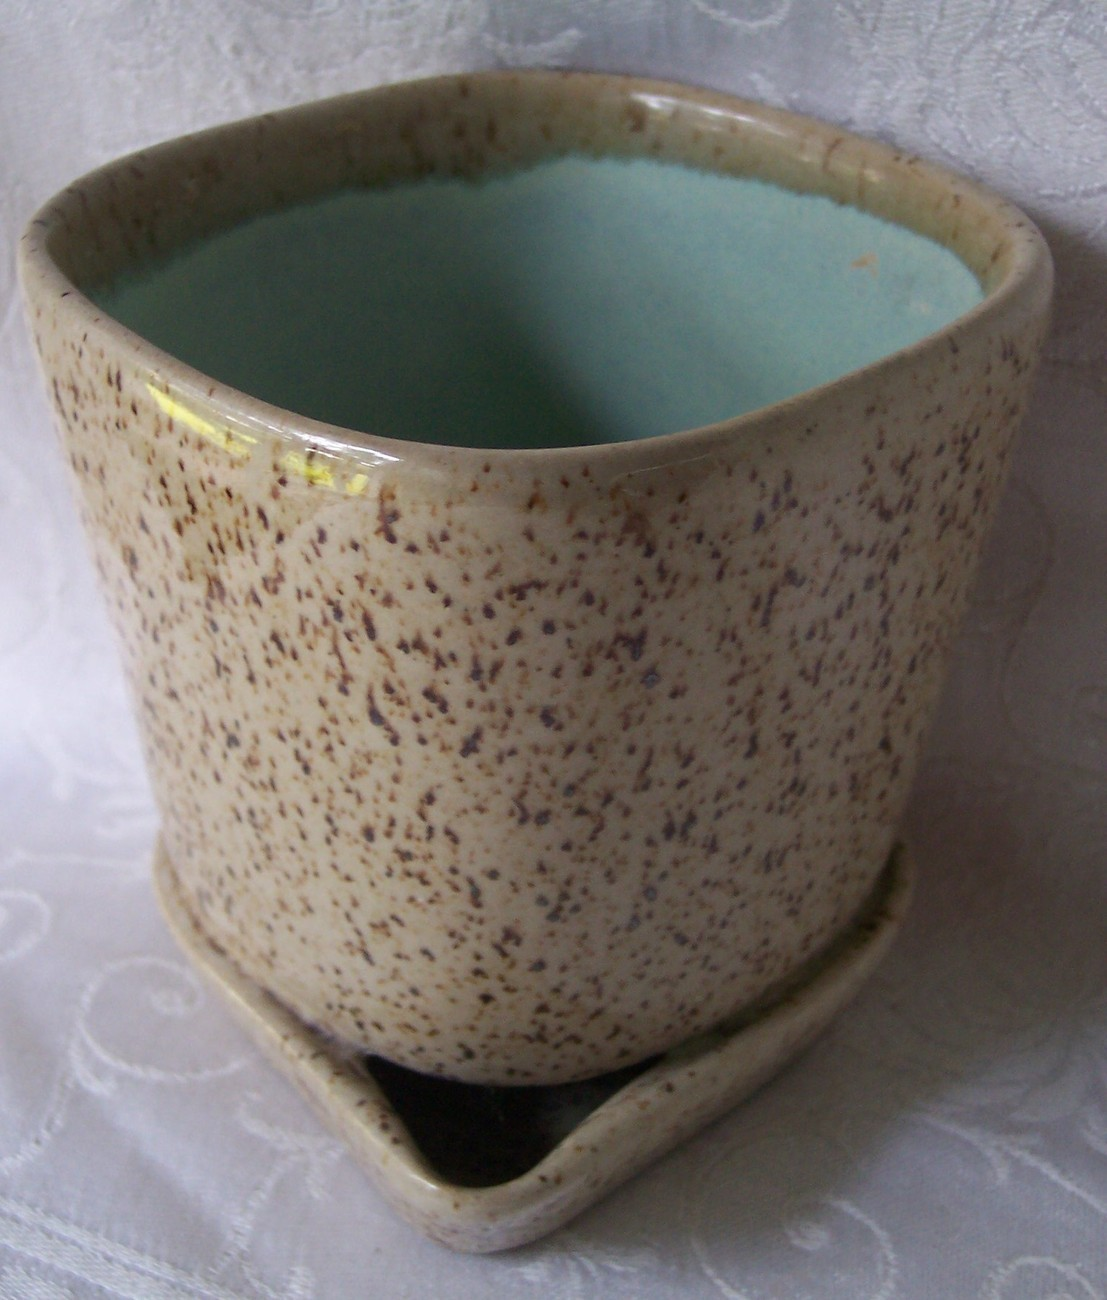 Glidden art pottery planter brown speckled truquoise3